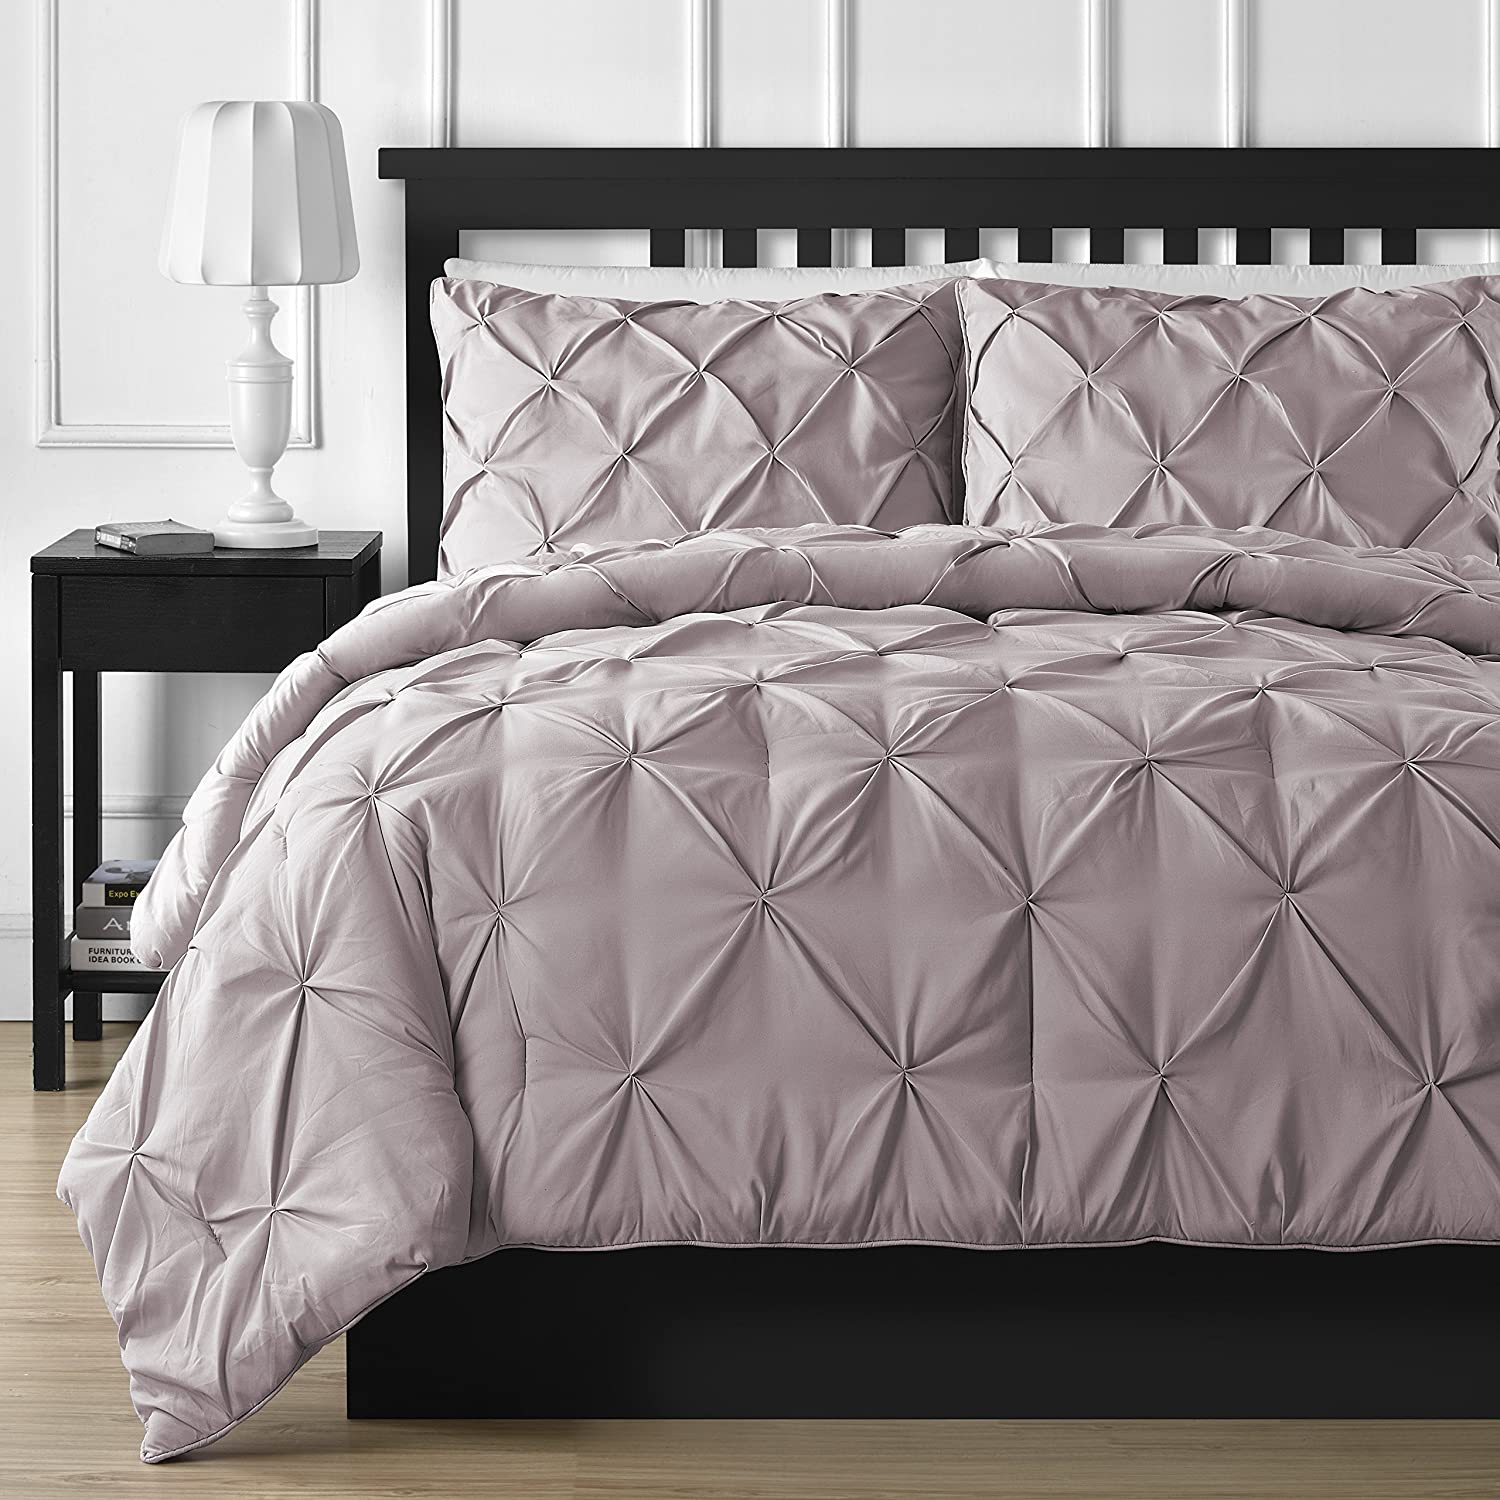 rose place ebay a soft comforter to in twin secret nursery for with best bedroom plus well beddings sheets of bag solid together blush bedding full set buy also pink victorias size victoria as sale conjunction dusty bed